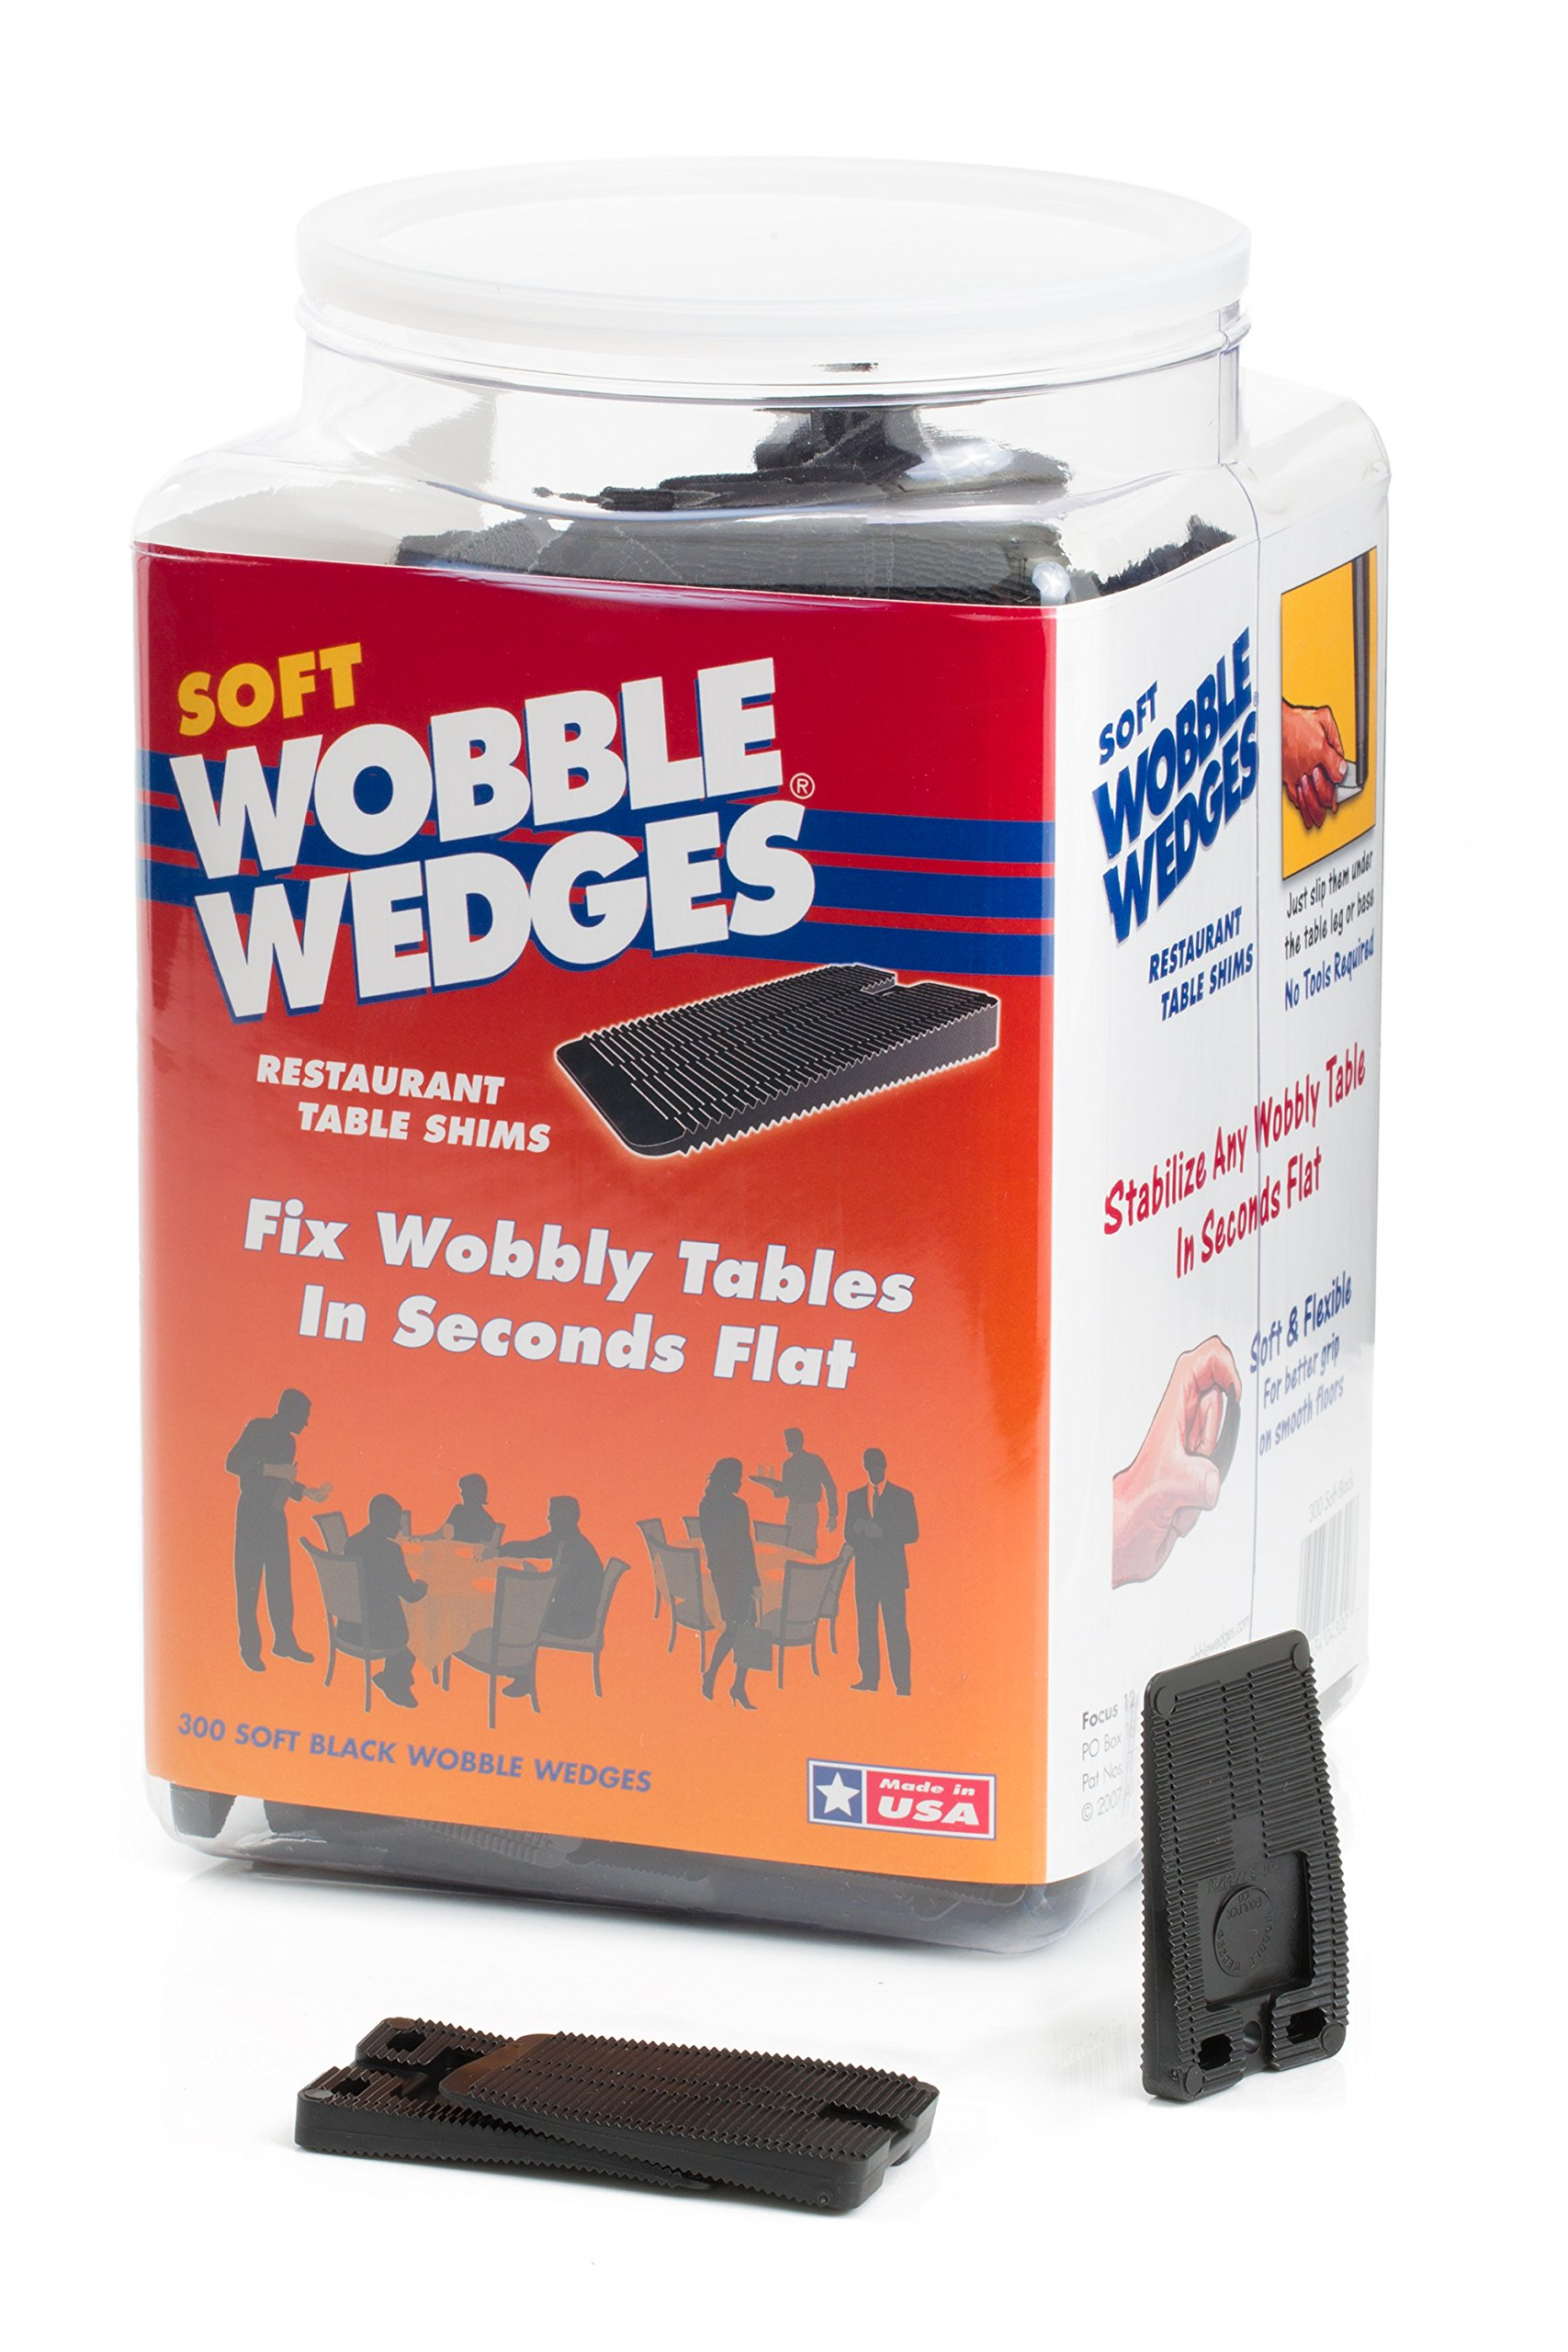 Wobble Wedge - Soft Black - Restaurant Table Shims - 300 Piece Jar by WOBBLE WEDGES